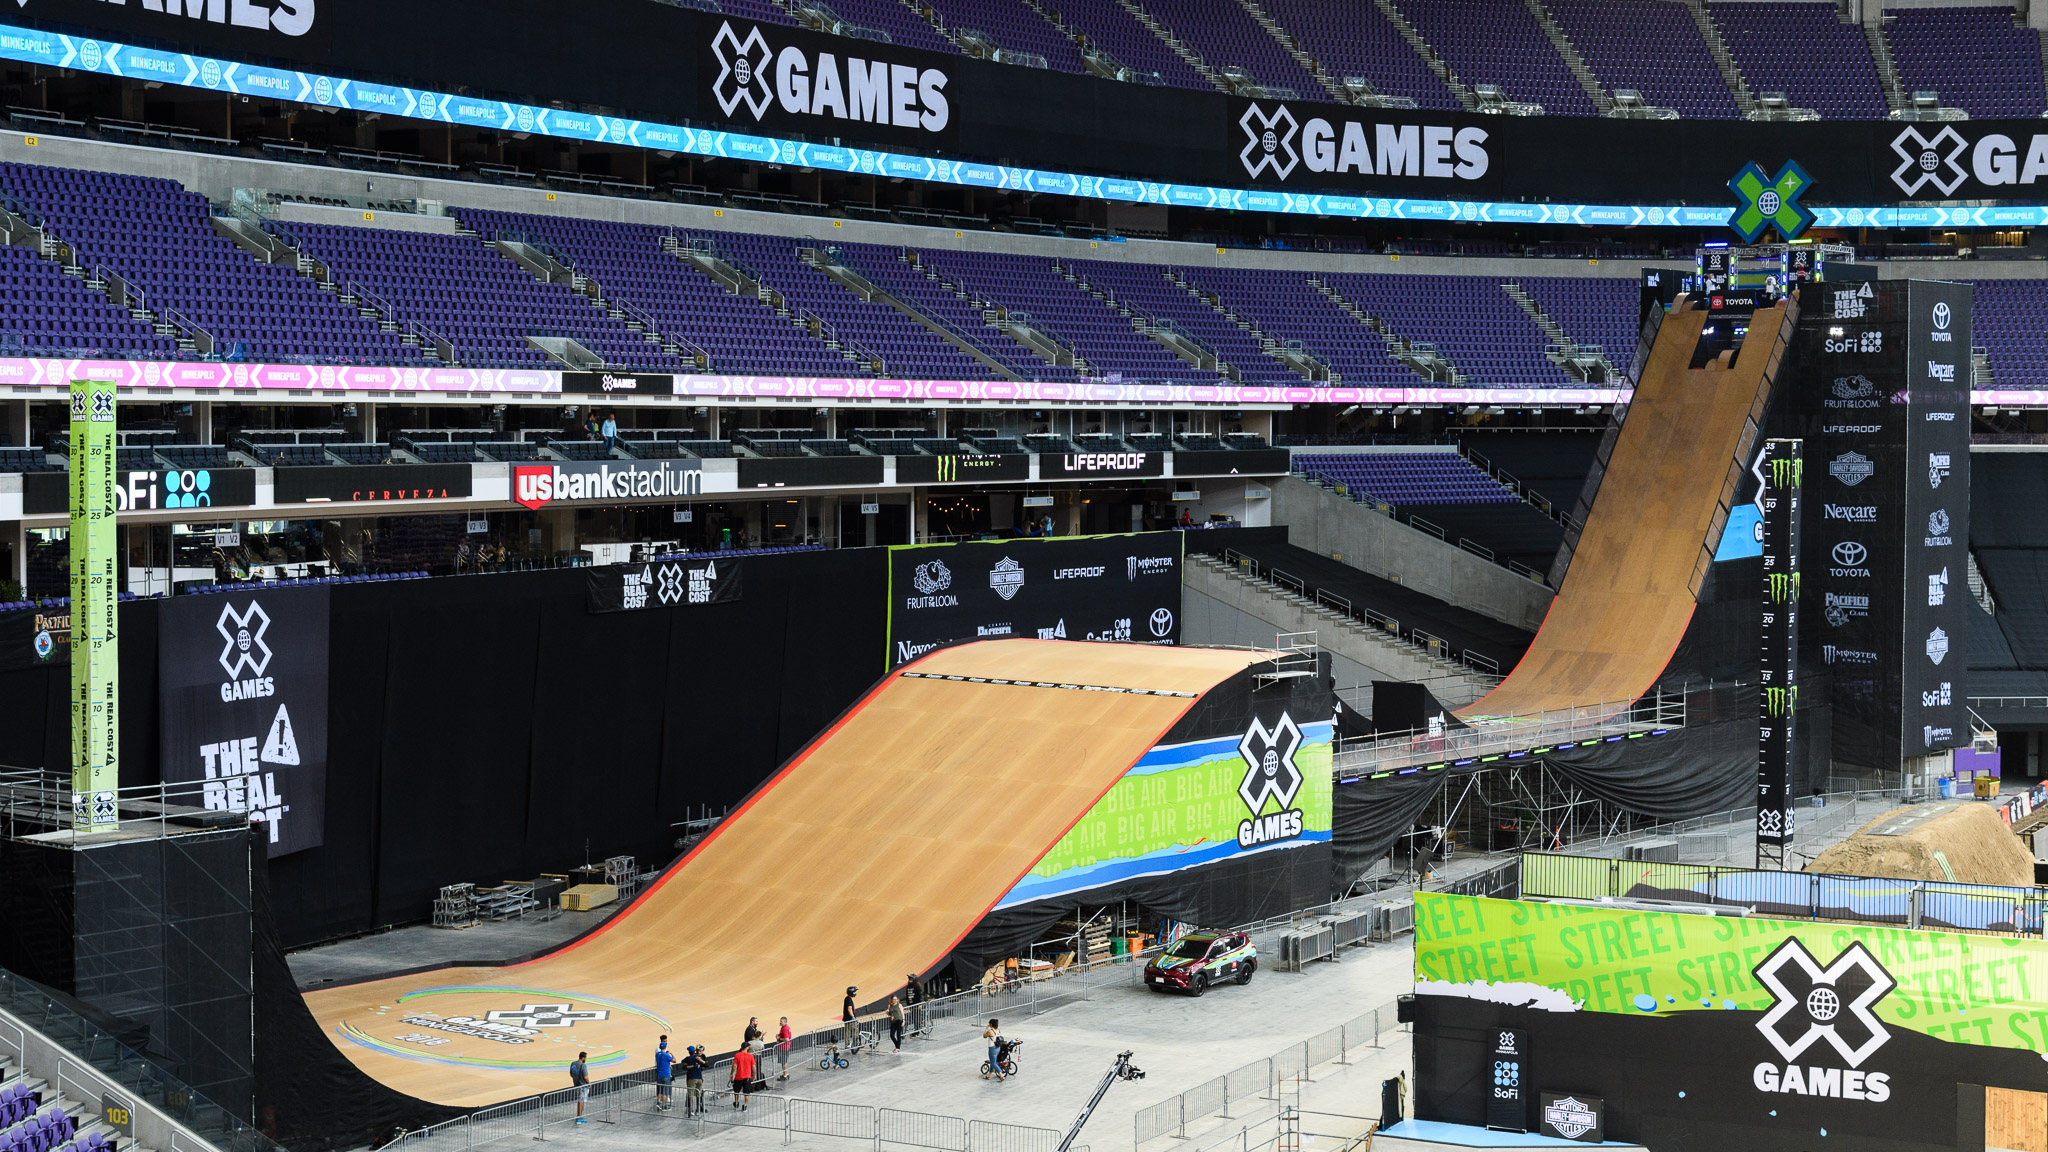 In just a few days, those stands will be packed with Big Air fans.